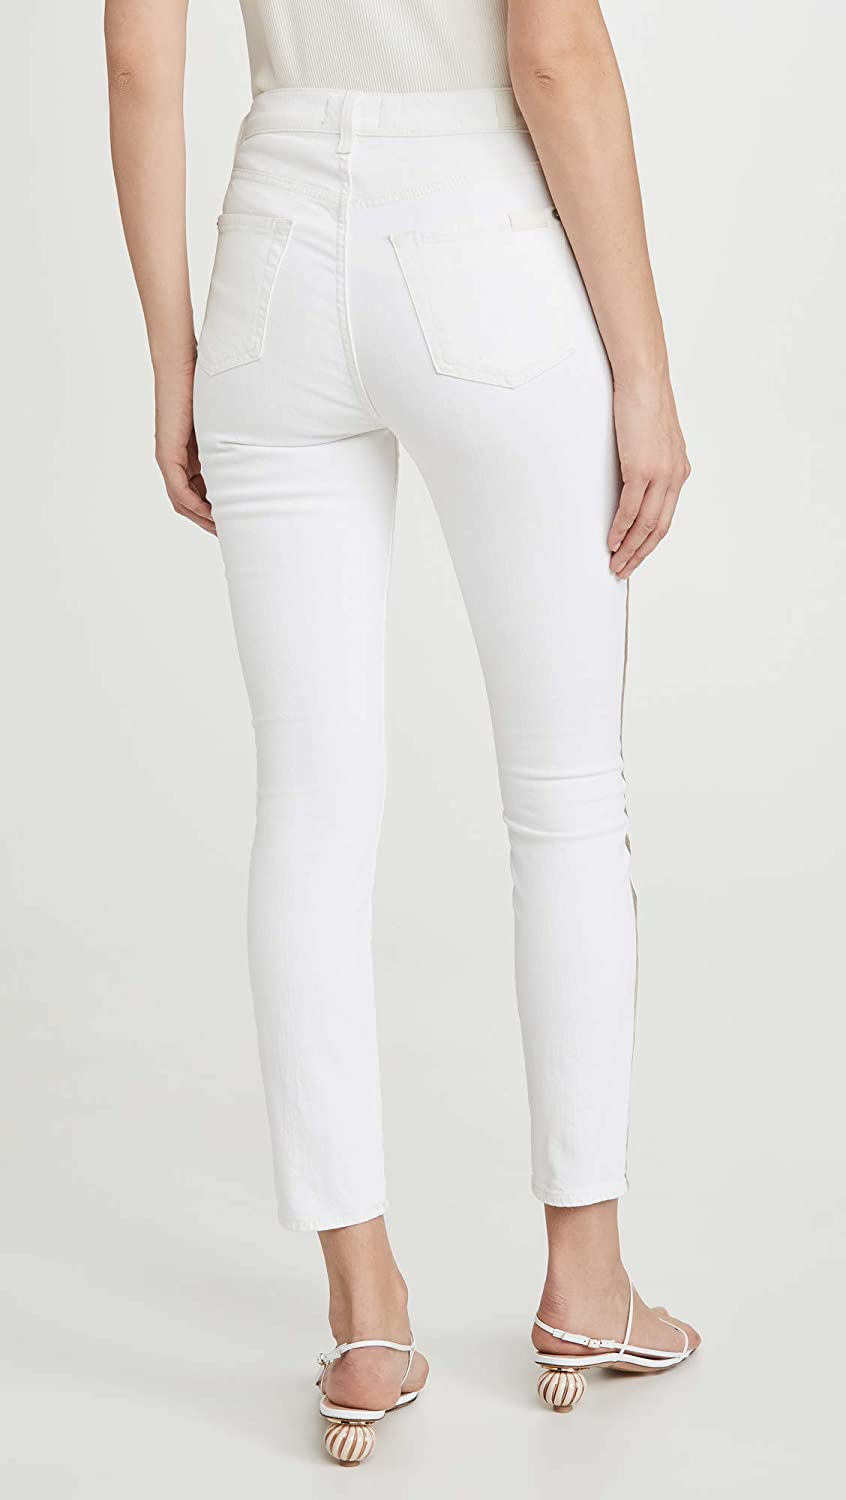 7 For All Mankind Womens High Waist Ankle Skinny Jeans